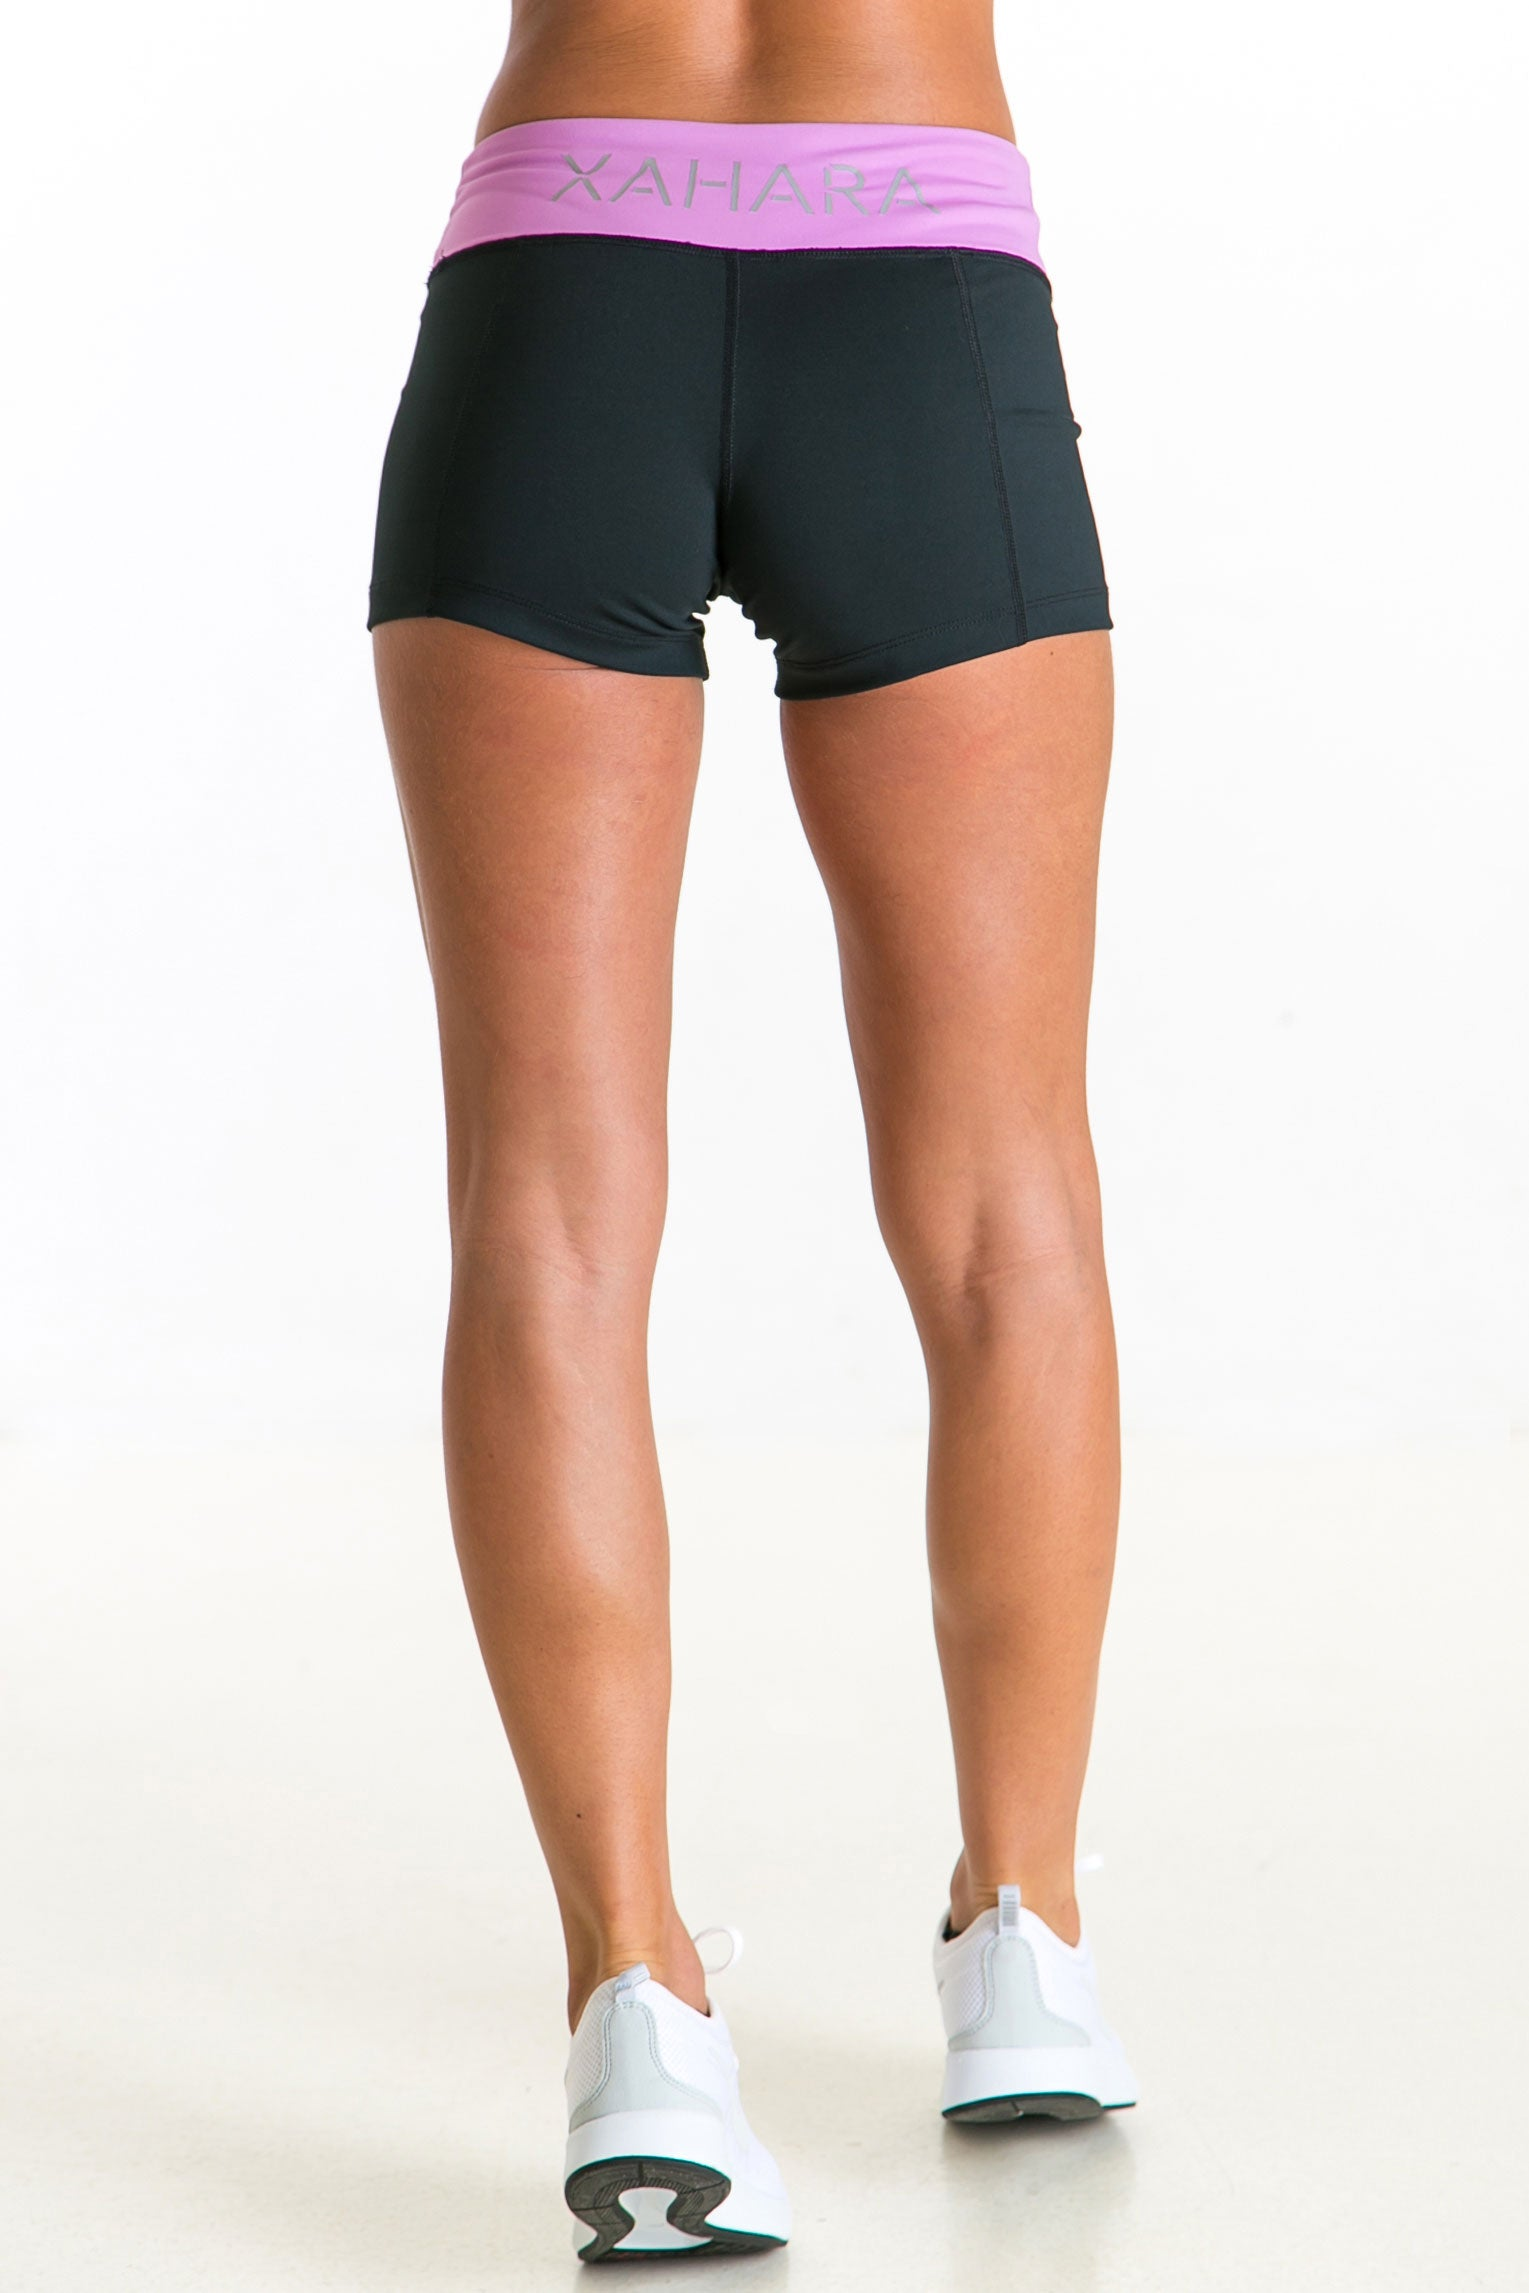 Eclipse Berry Short - Xahara Activewear